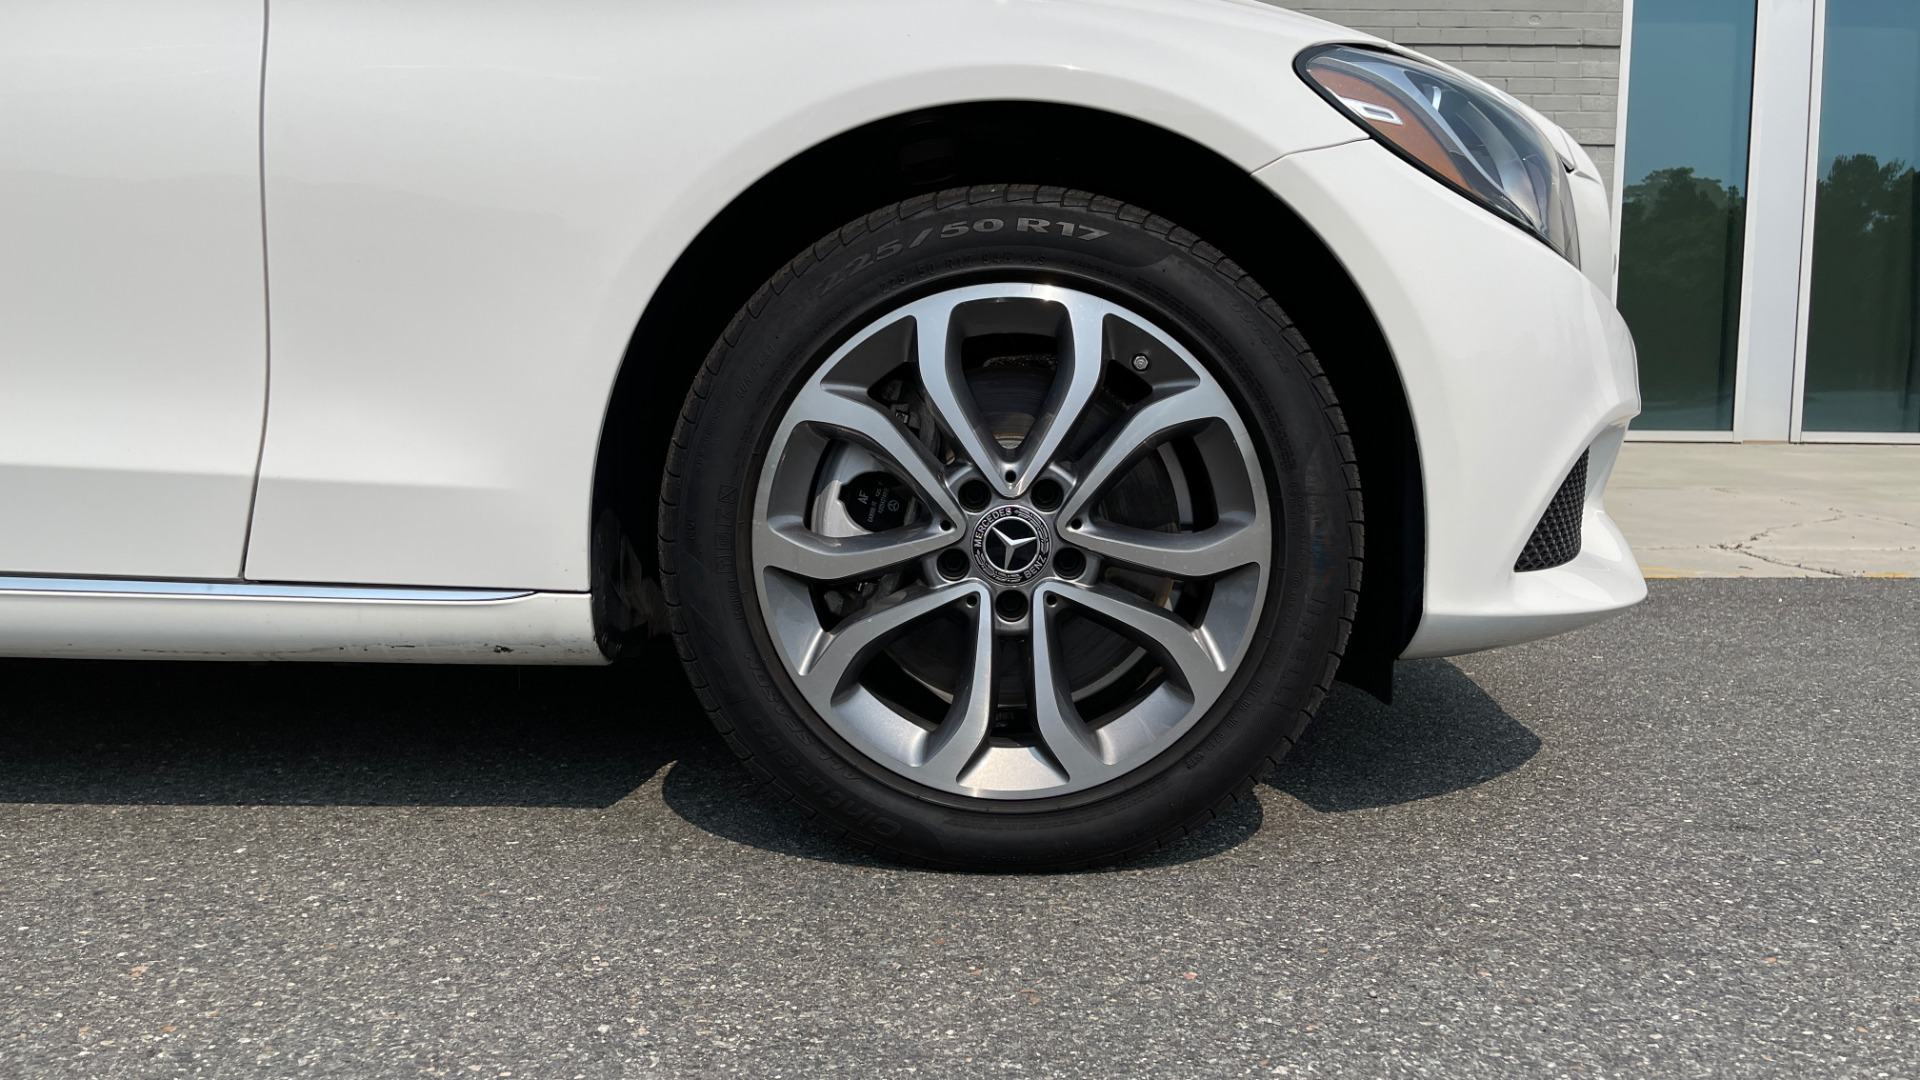 Used 2018 Mercedes-Benz C-Class C 300 4MATIC / PREMIUM / BURMESTER / HTD STS / SUNROOF / REARVIEW for sale $33,995 at Formula Imports in Charlotte NC 28227 62